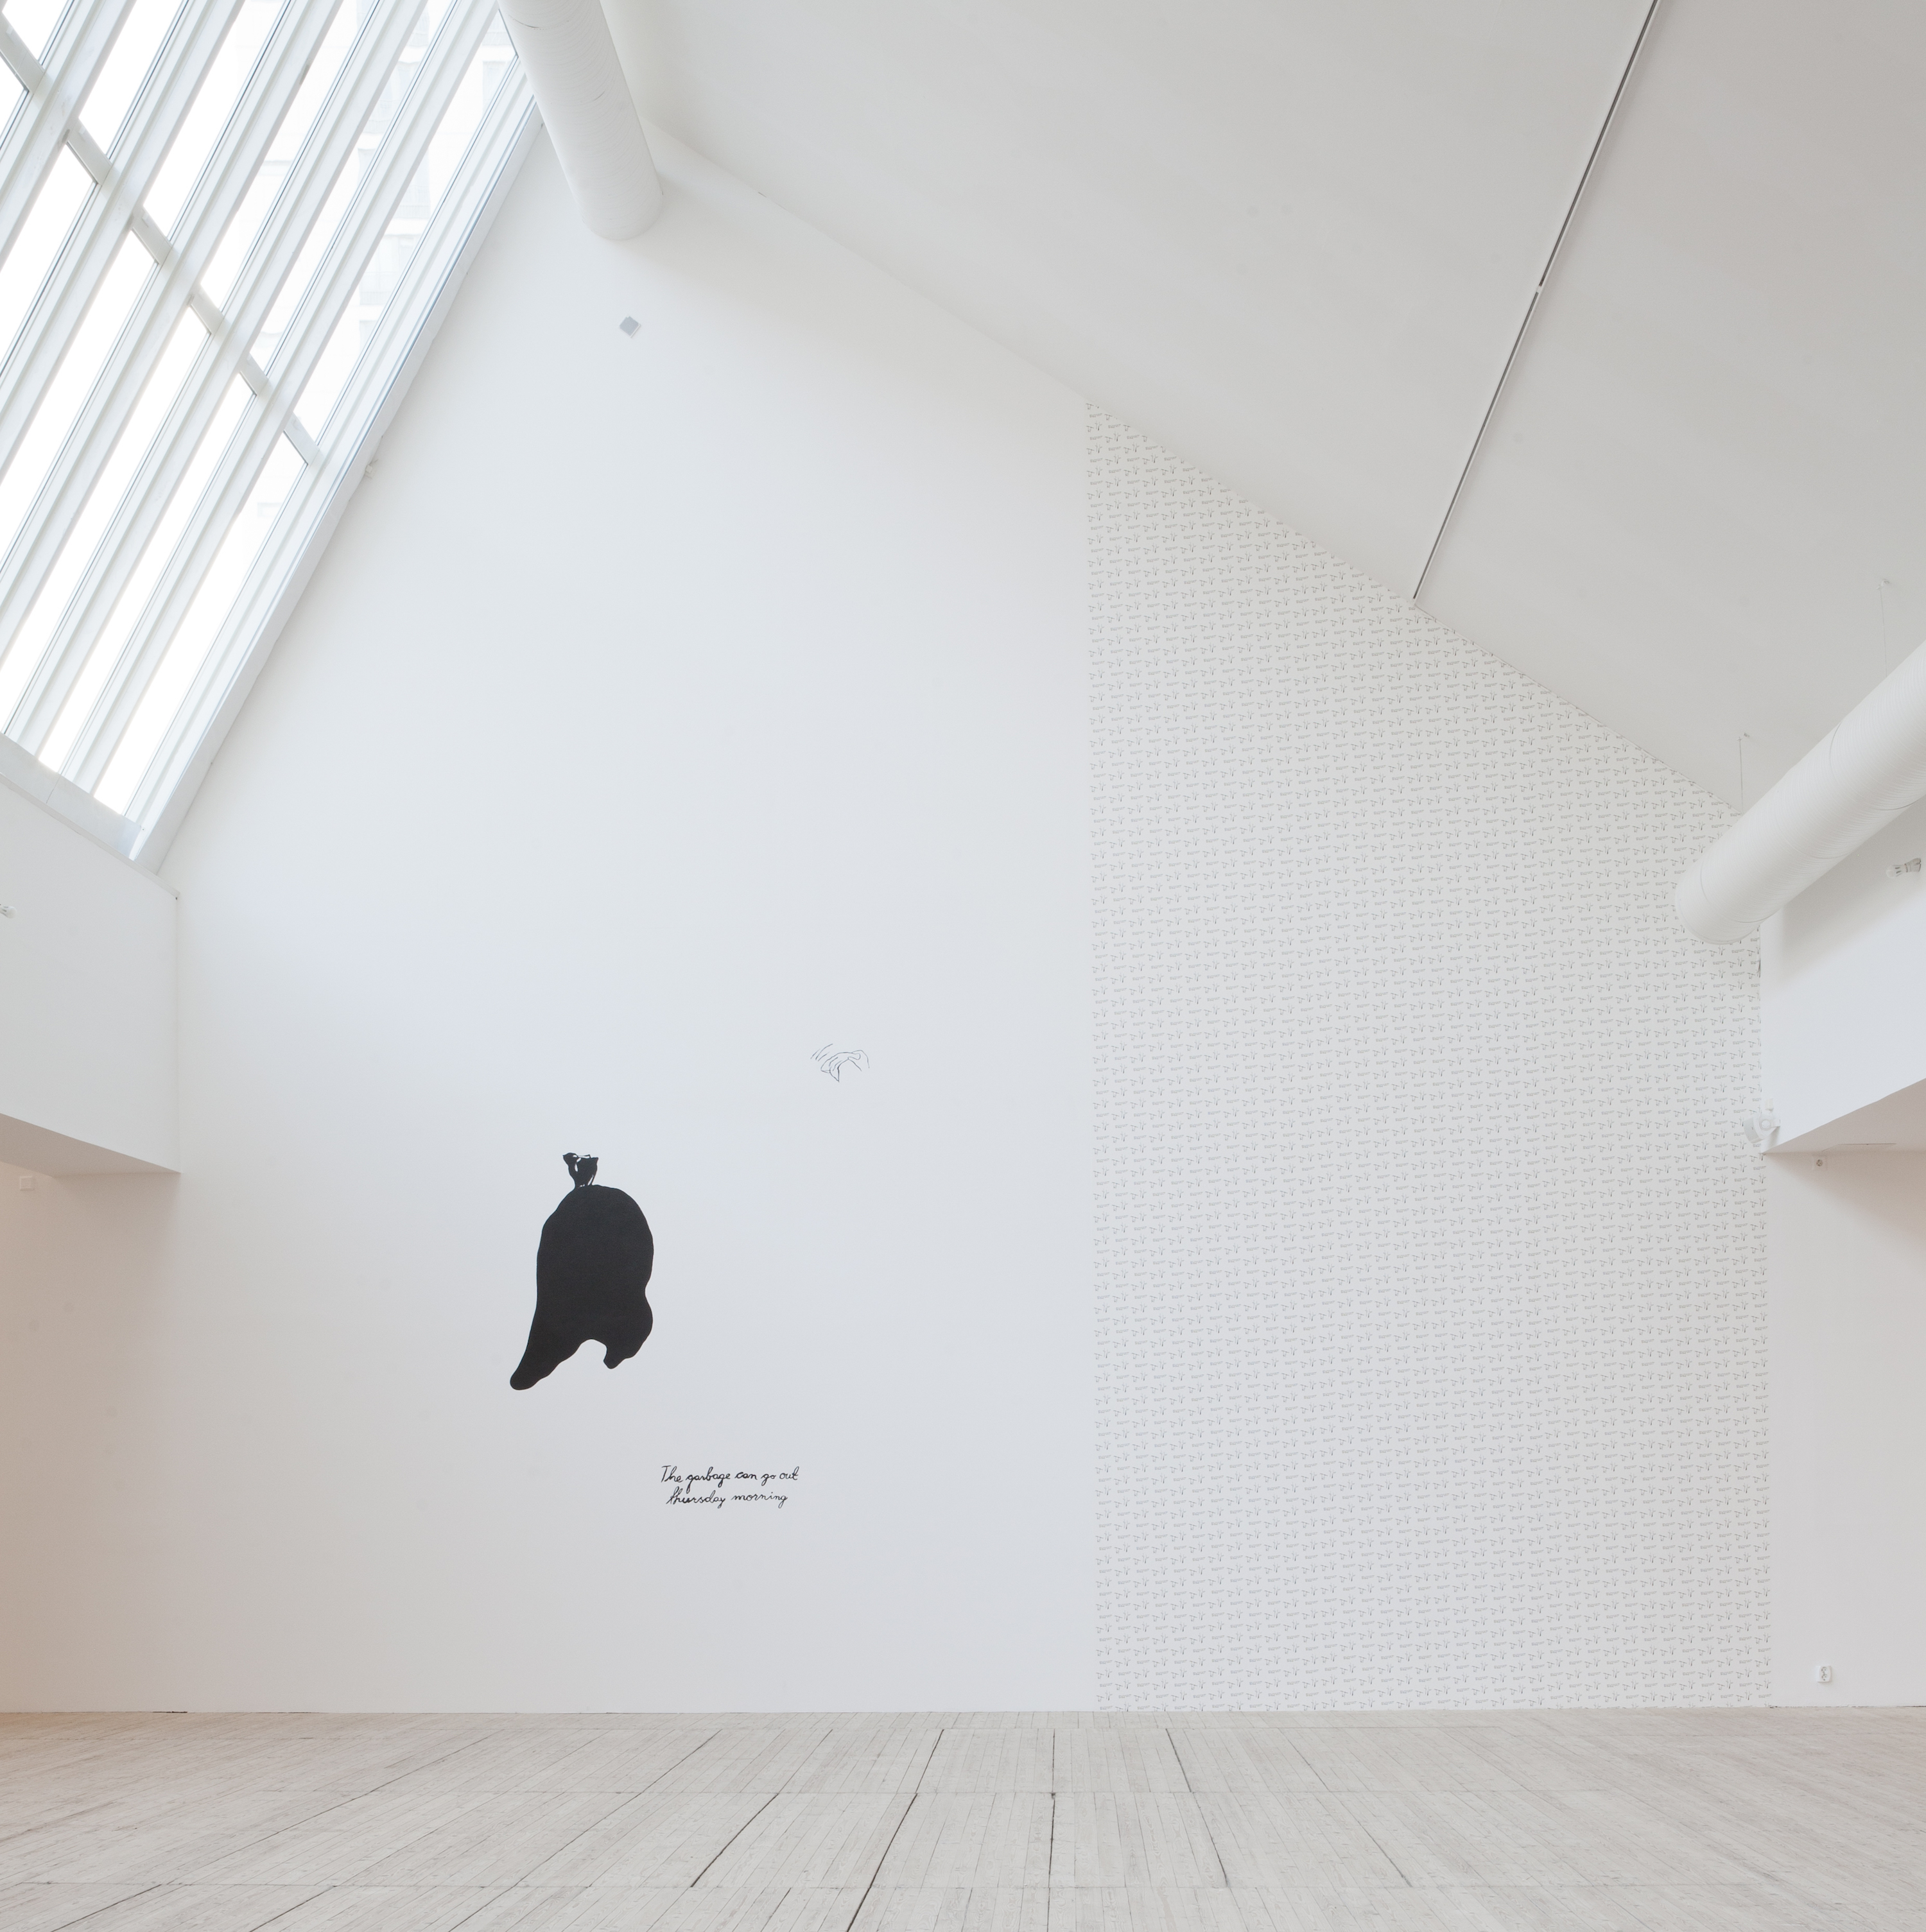 Maria Lindberg is showing at the Kunsthall until 13 January. Photo by Helen Toresdotter